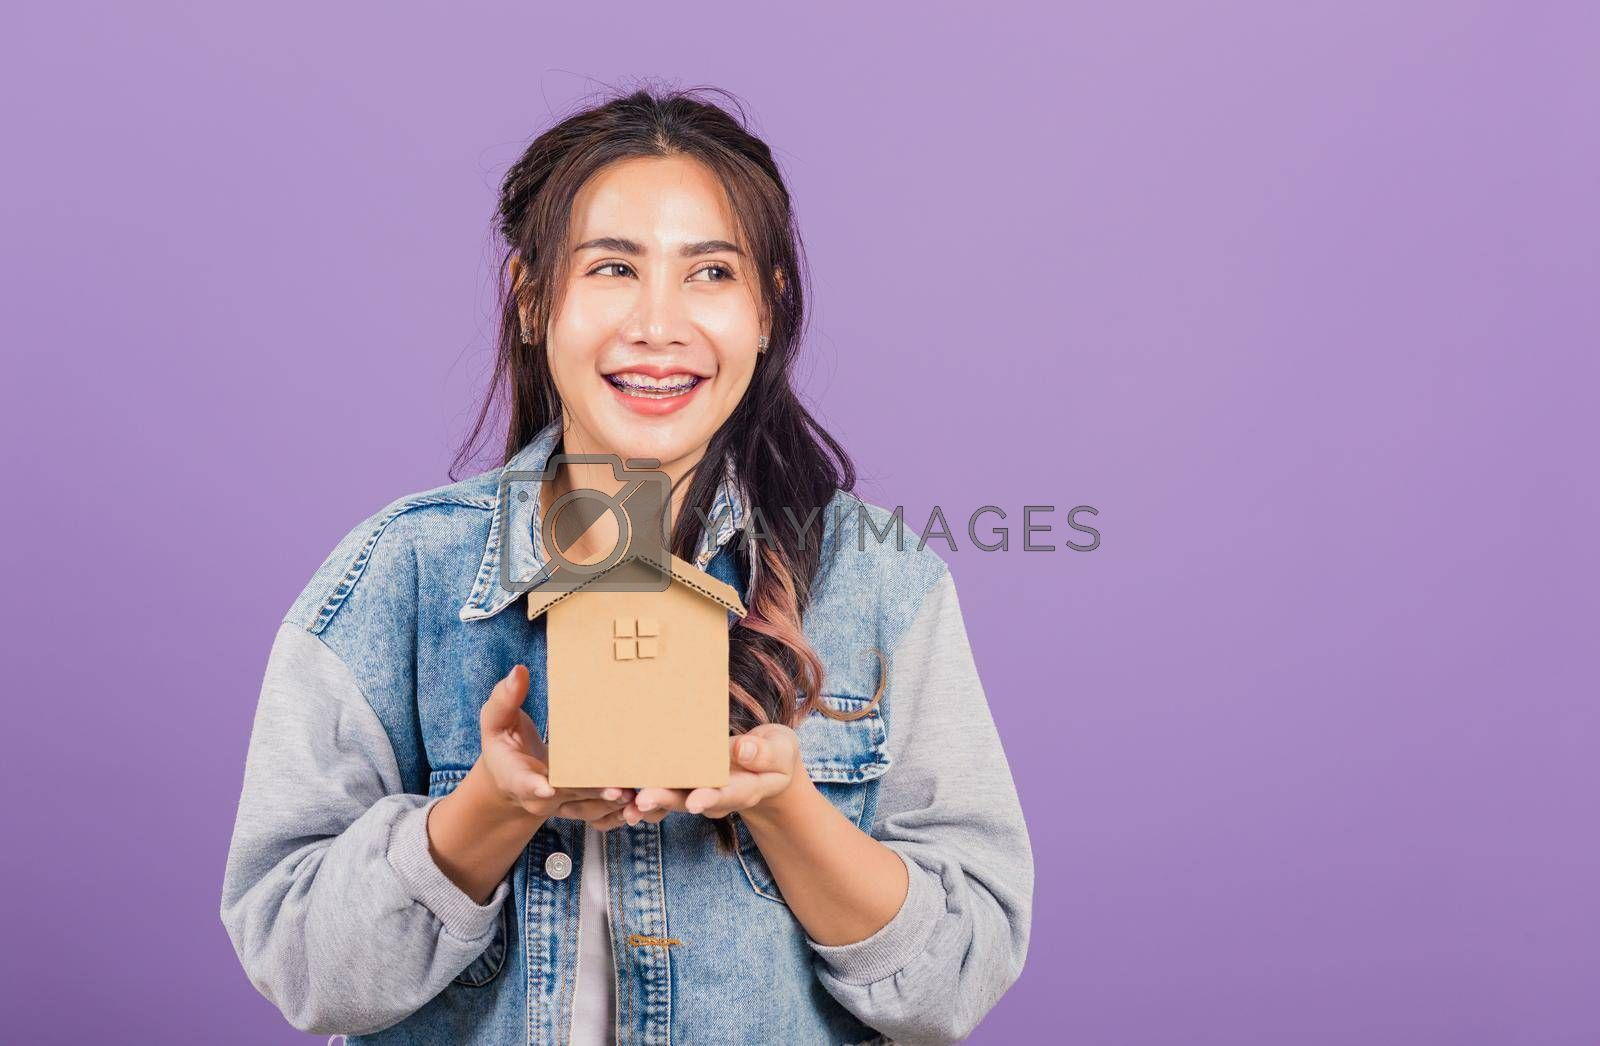 Happy Asian portrait beautiful cute young woman wear denim excited smiling holding house model on hand, studio shot isolated on purple background, broker female hold home real estate insurance